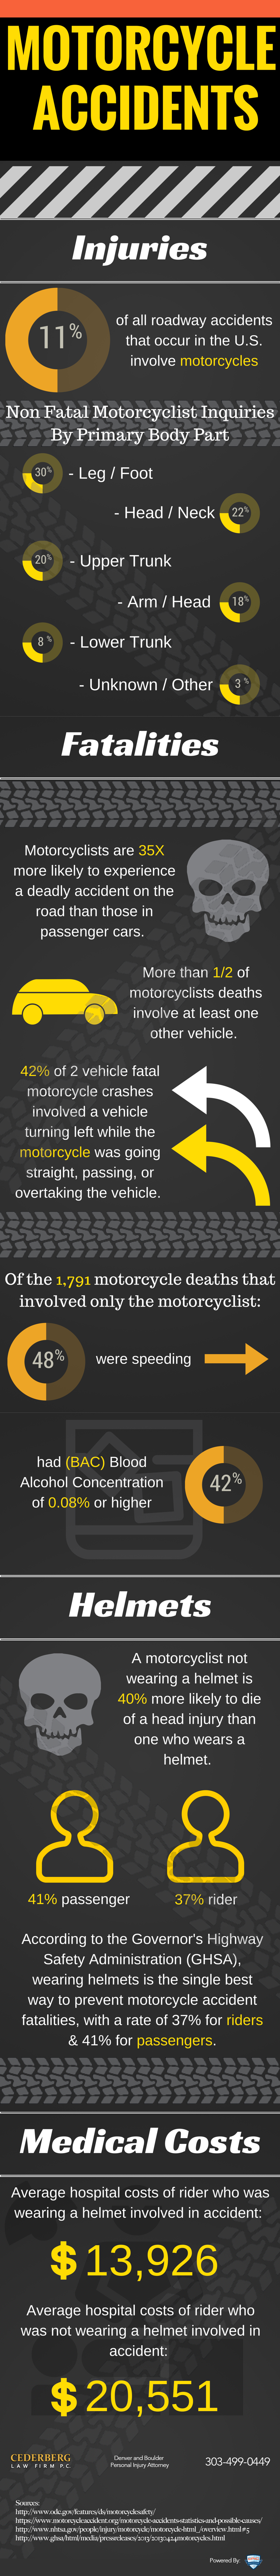 May Is Motorcycle Safety Awareness Month [Infographic]